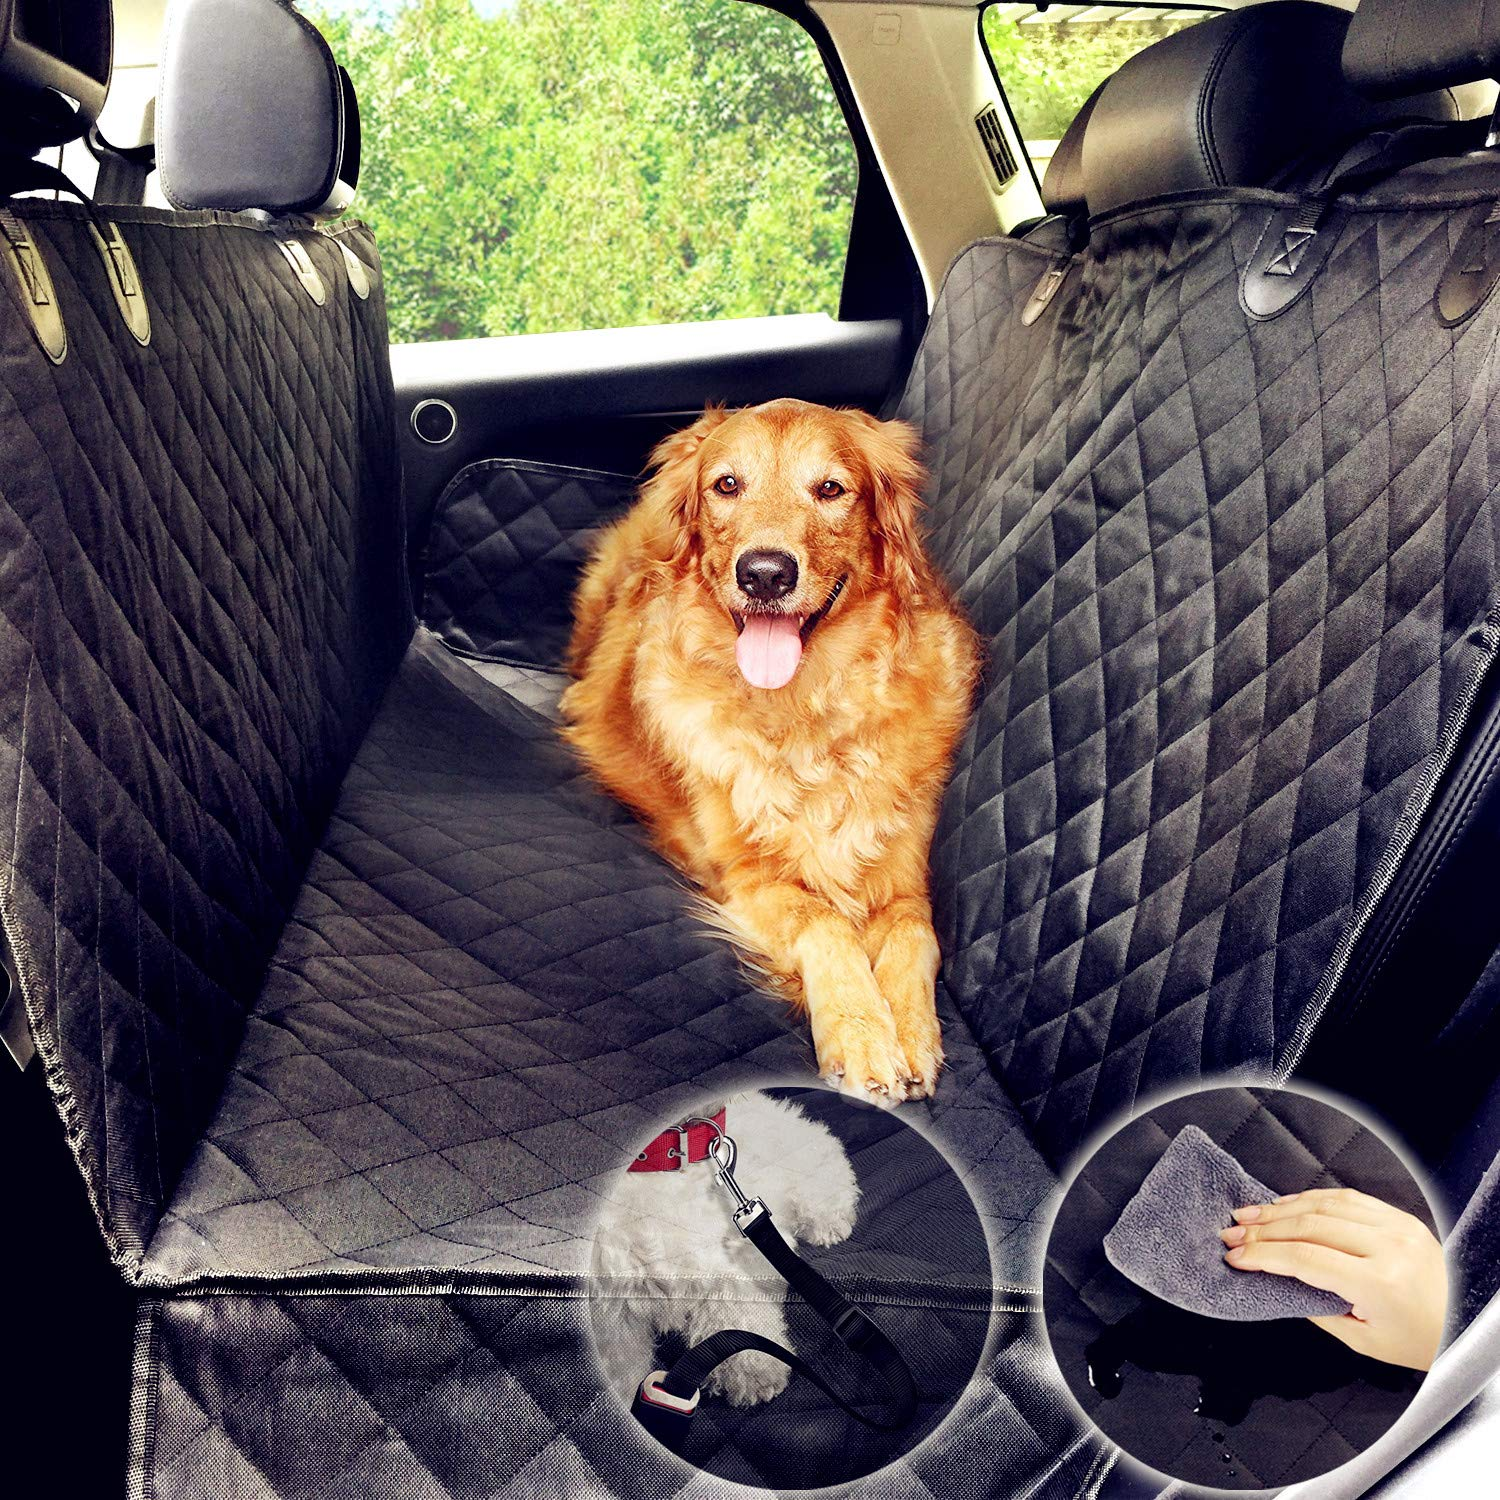 Dog Hammock, Car Seat Cover for Dog, Water-Proof Predector for Pet Rear Seat Cover, Non-Slip Universal Size (137x147 cm) with Dog Seat Belt (Black)